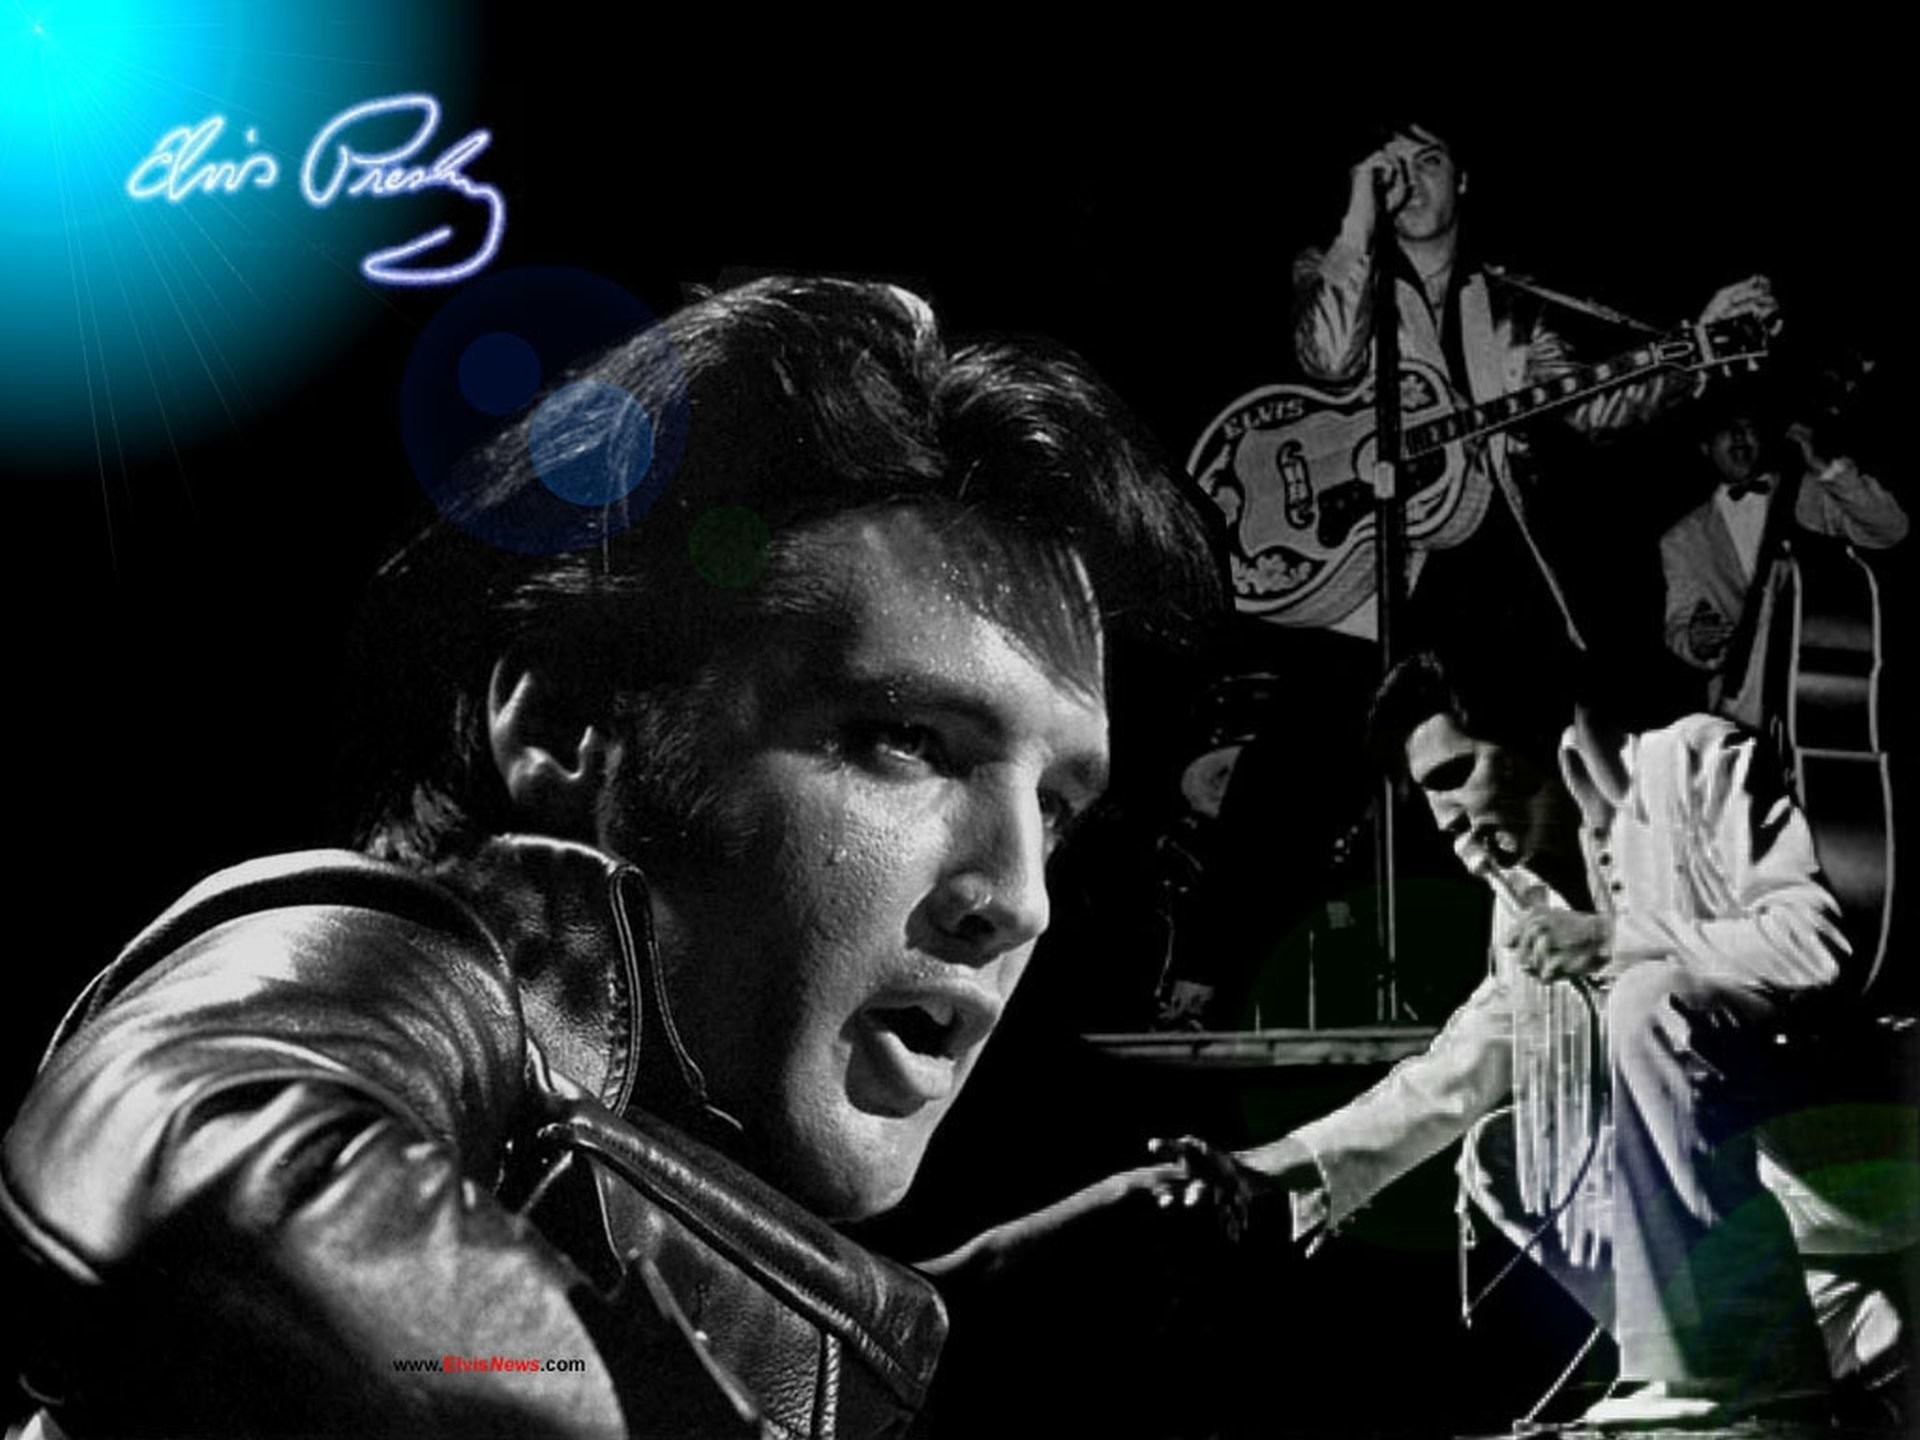 1920x1440 Music - Elvis Presley The King Rock & Roll Music Wallpaper